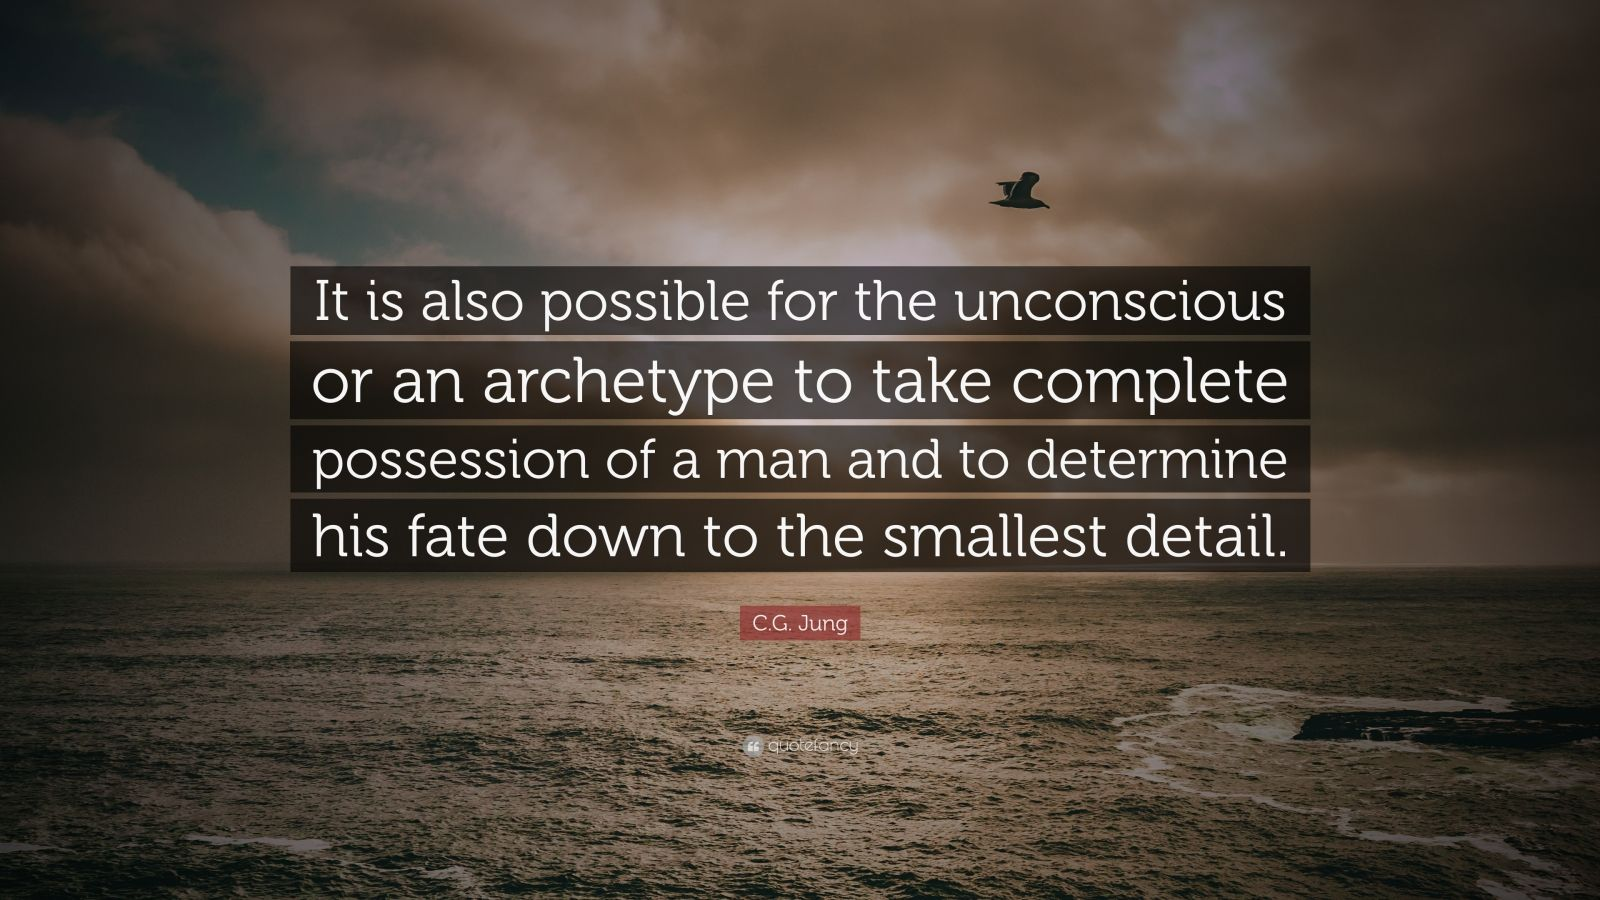 "C.G. Jung Quote: ""It is also possible for the unconscious or an archetype to take complete possession of a man and to determine his fate down to the smallest detail."""